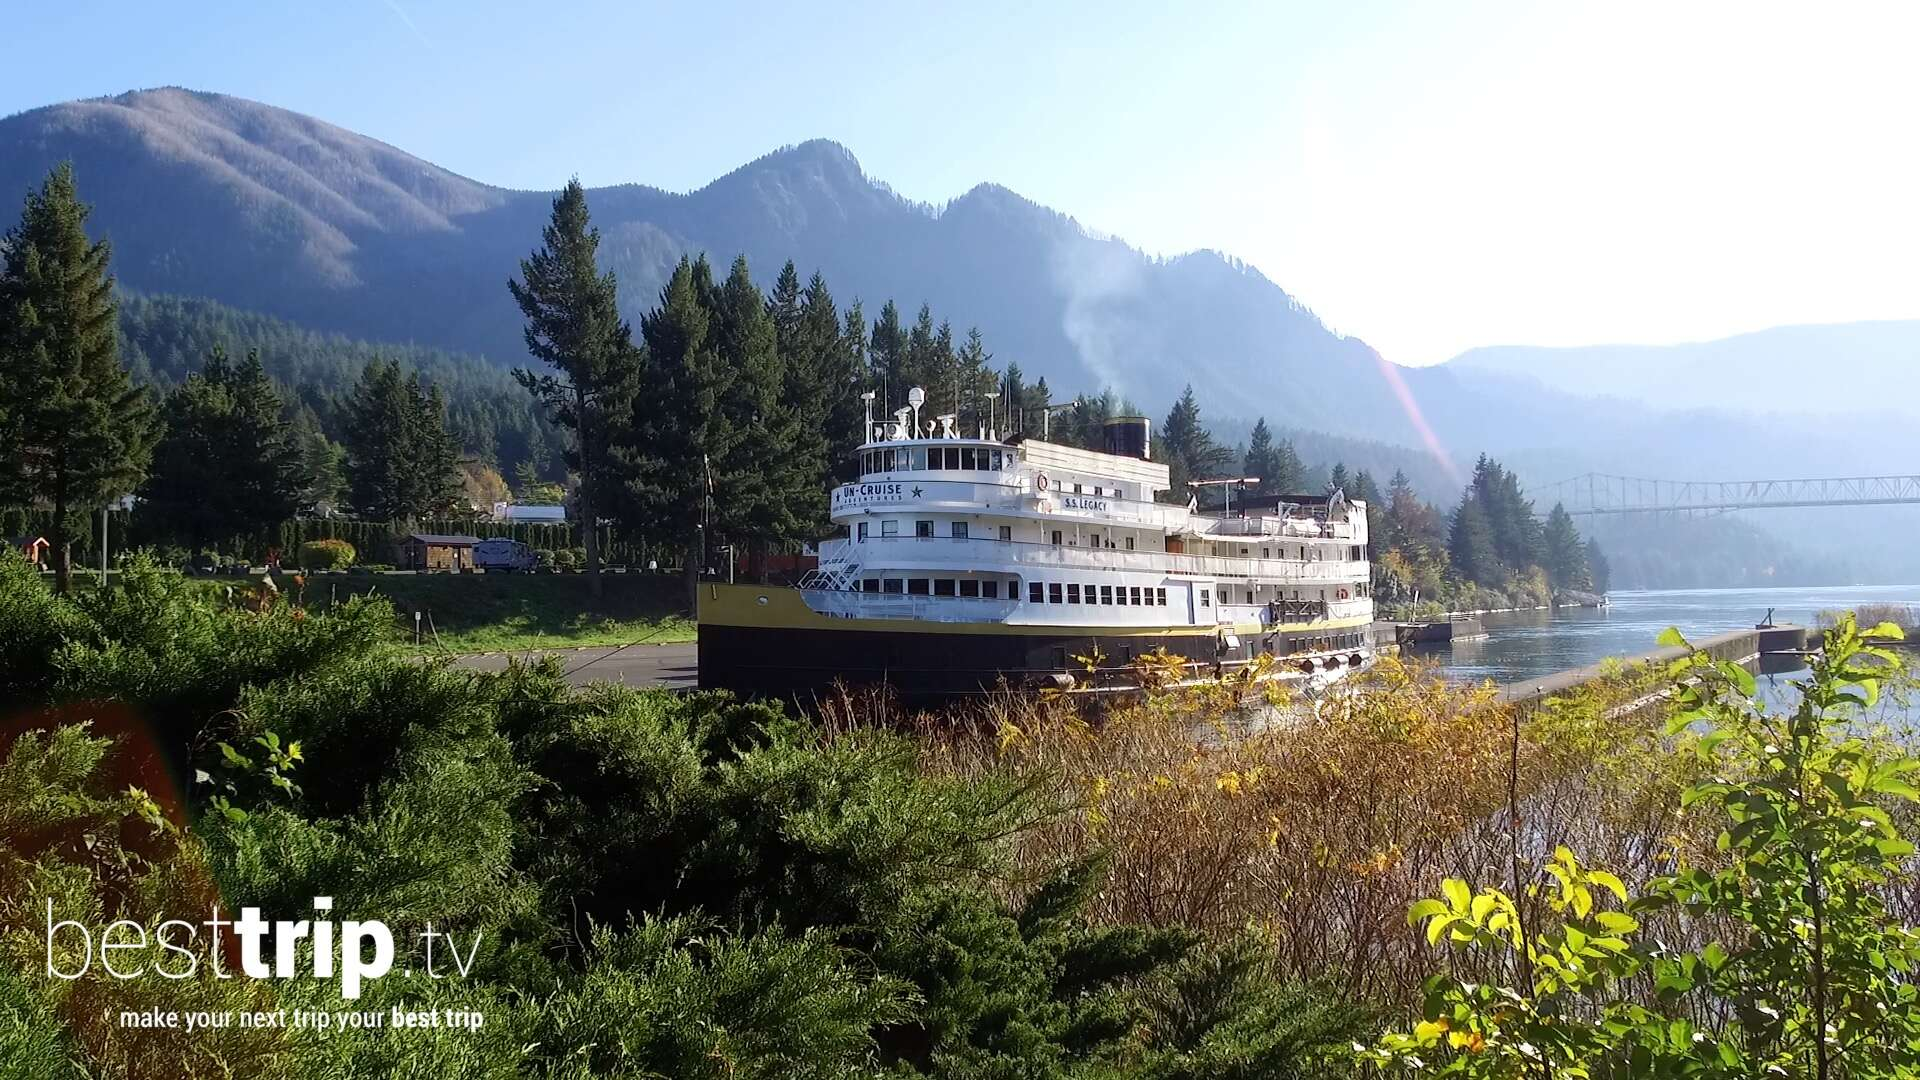 Save $800 on an 'Uncruise' Adventure Next Year in the American Pacific, Northwest and Alaska